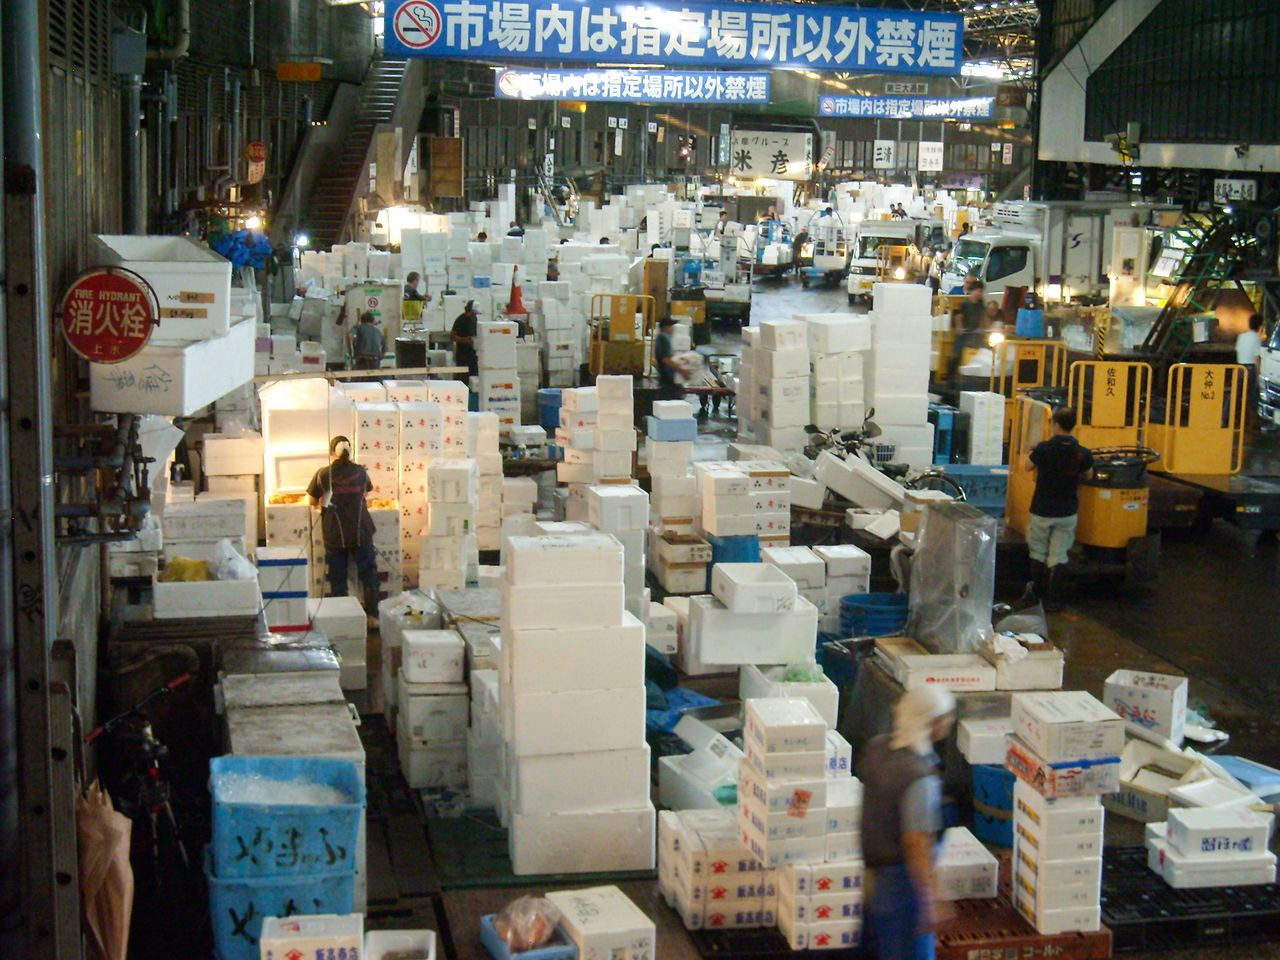 Lively trading in the early morning hours at the former Tsukiji market.